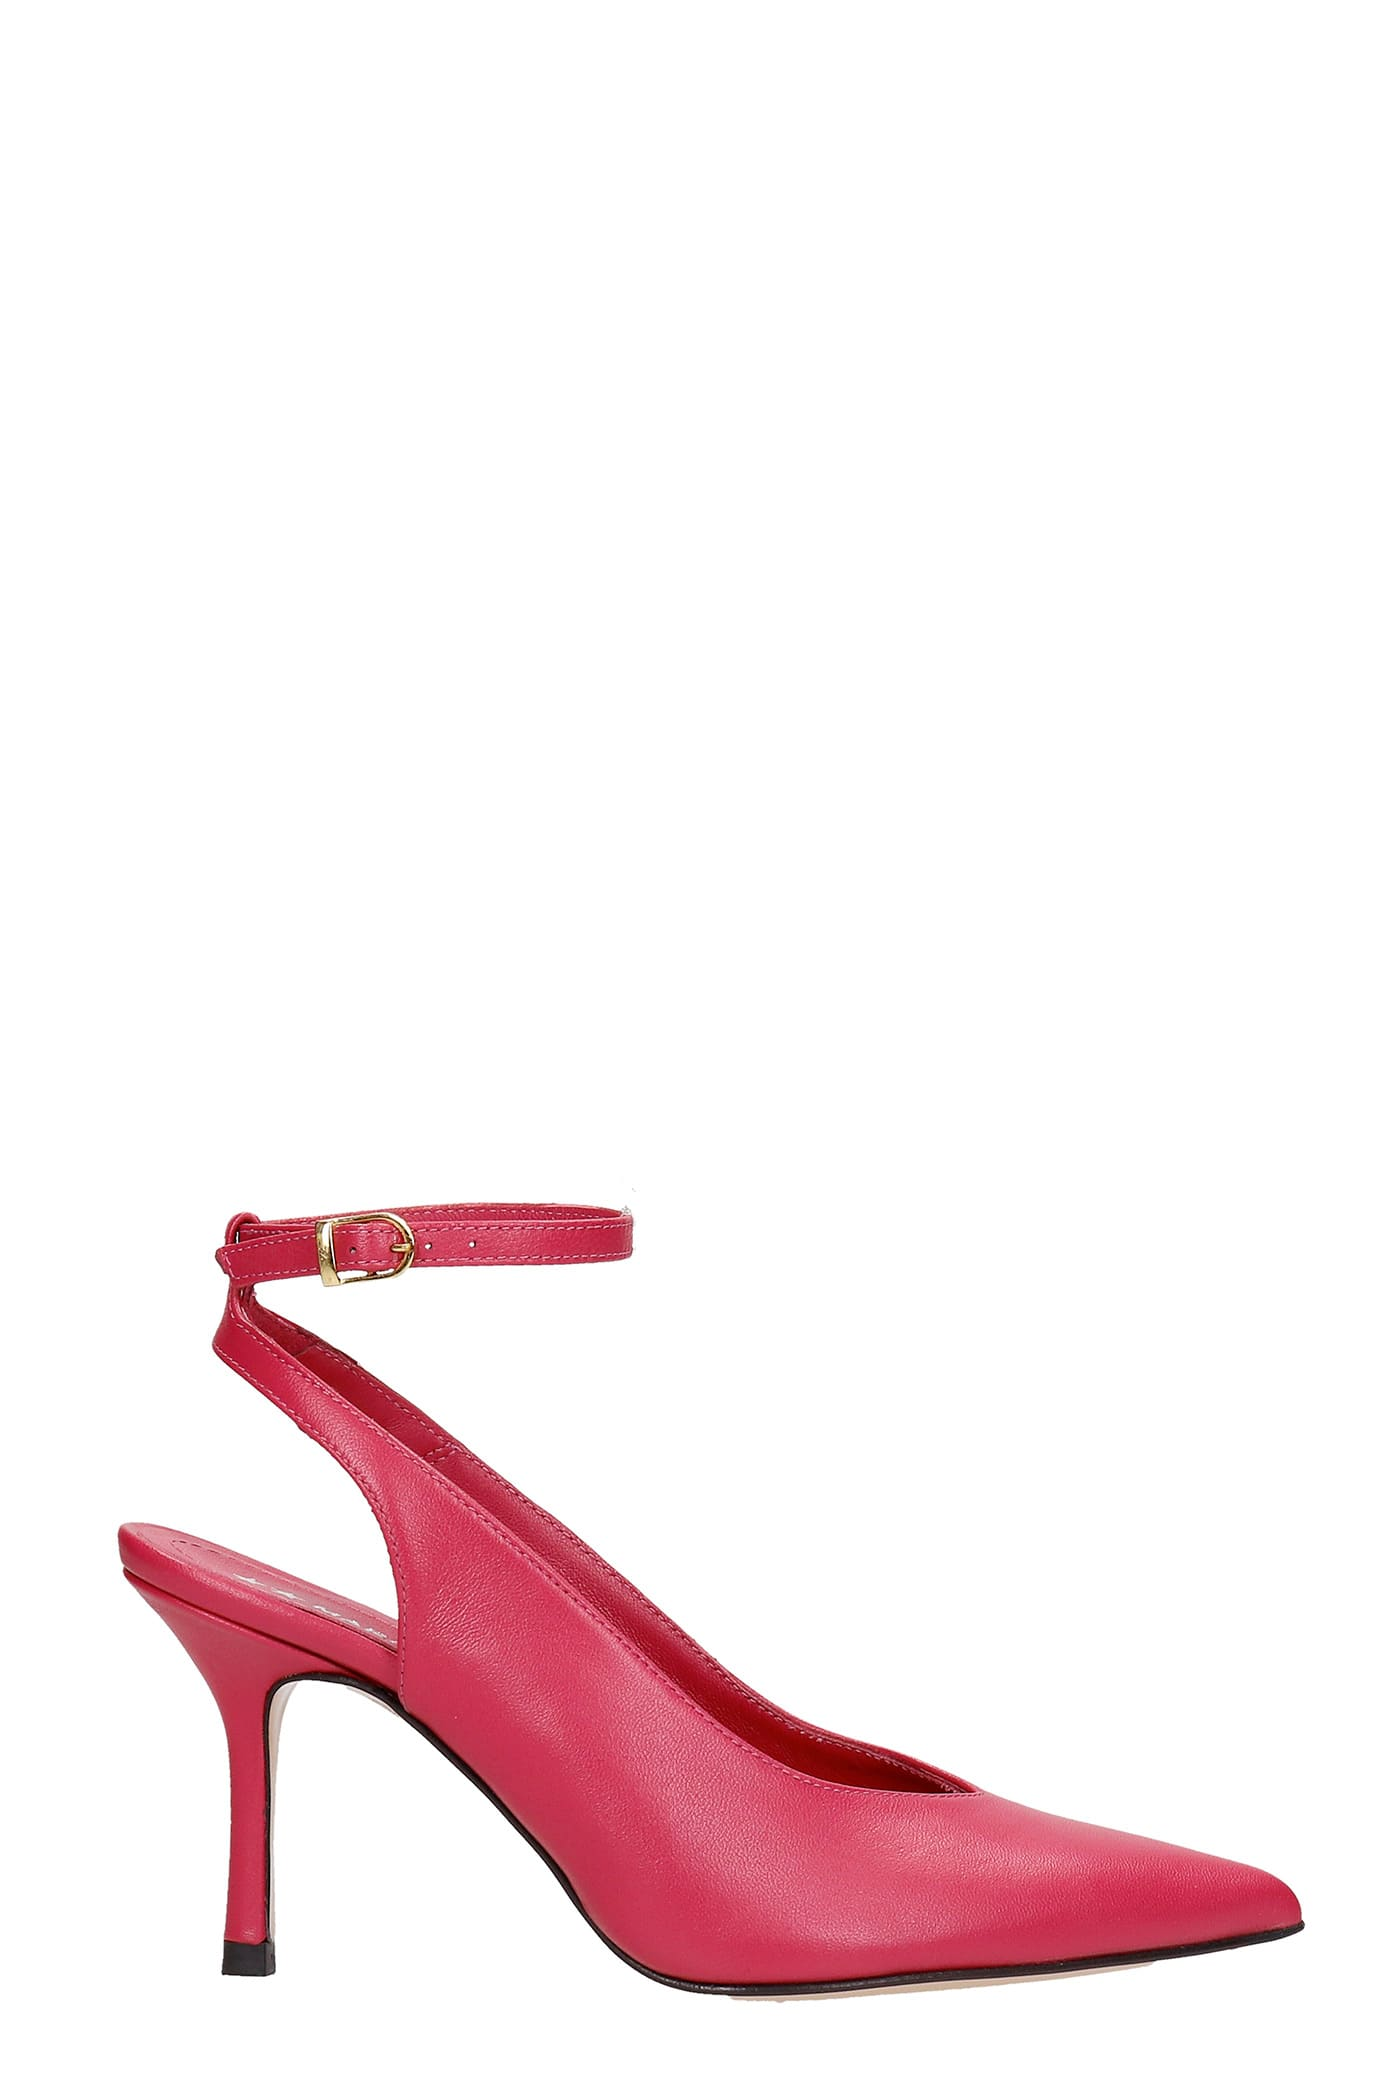 Mabel Pumps In Fuxia Leather